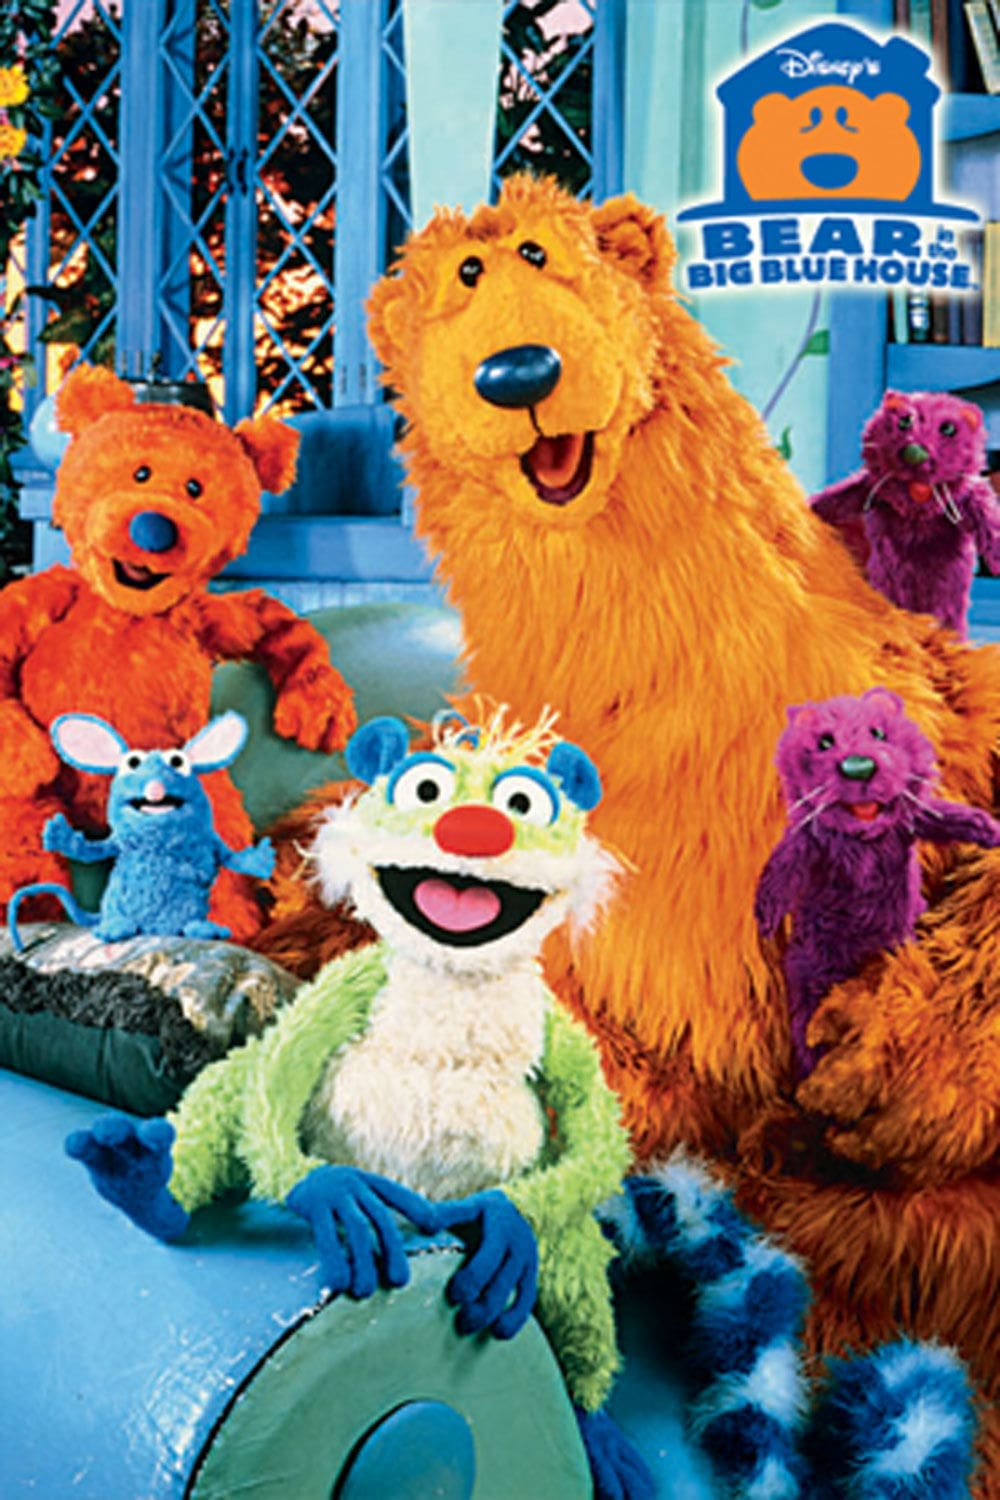 bear in the big blue house products - Bear Inthe Big Blue House Christmas